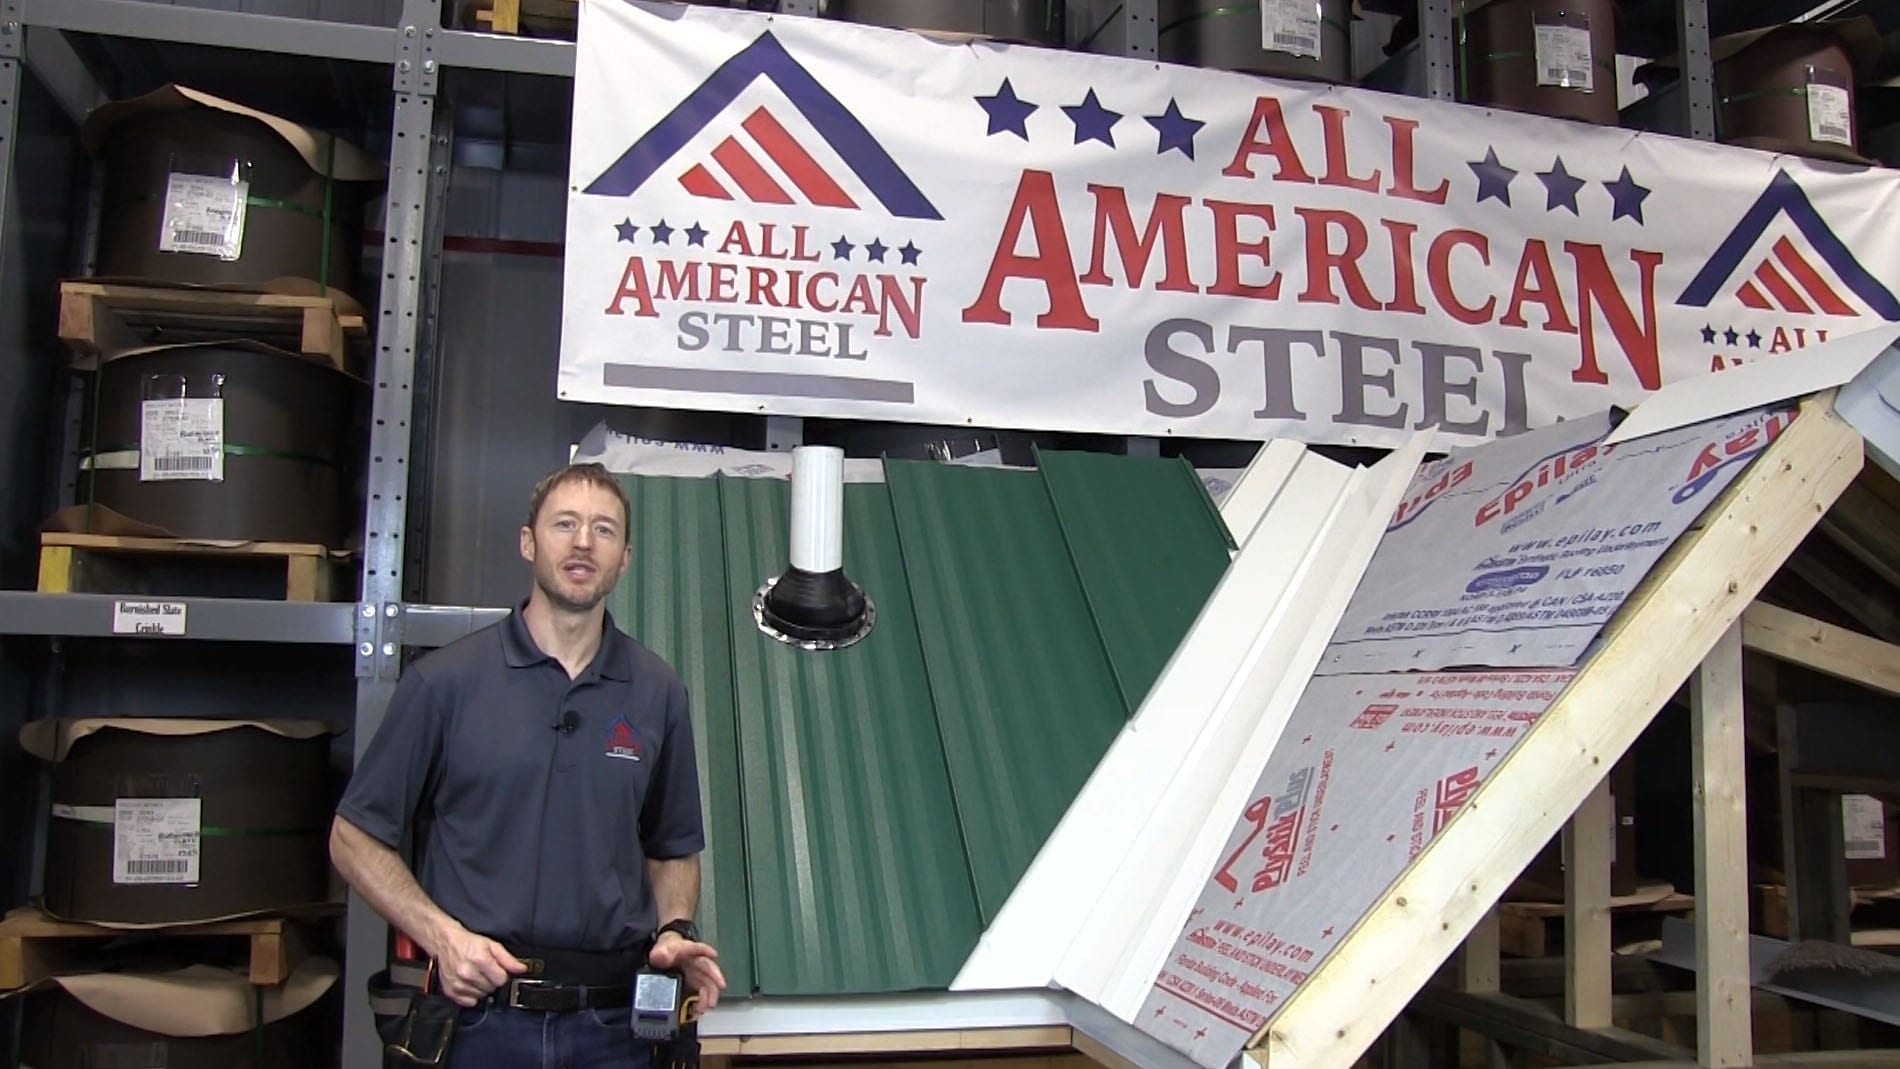 All American Steel image from video for background of project page by Right to Evolve